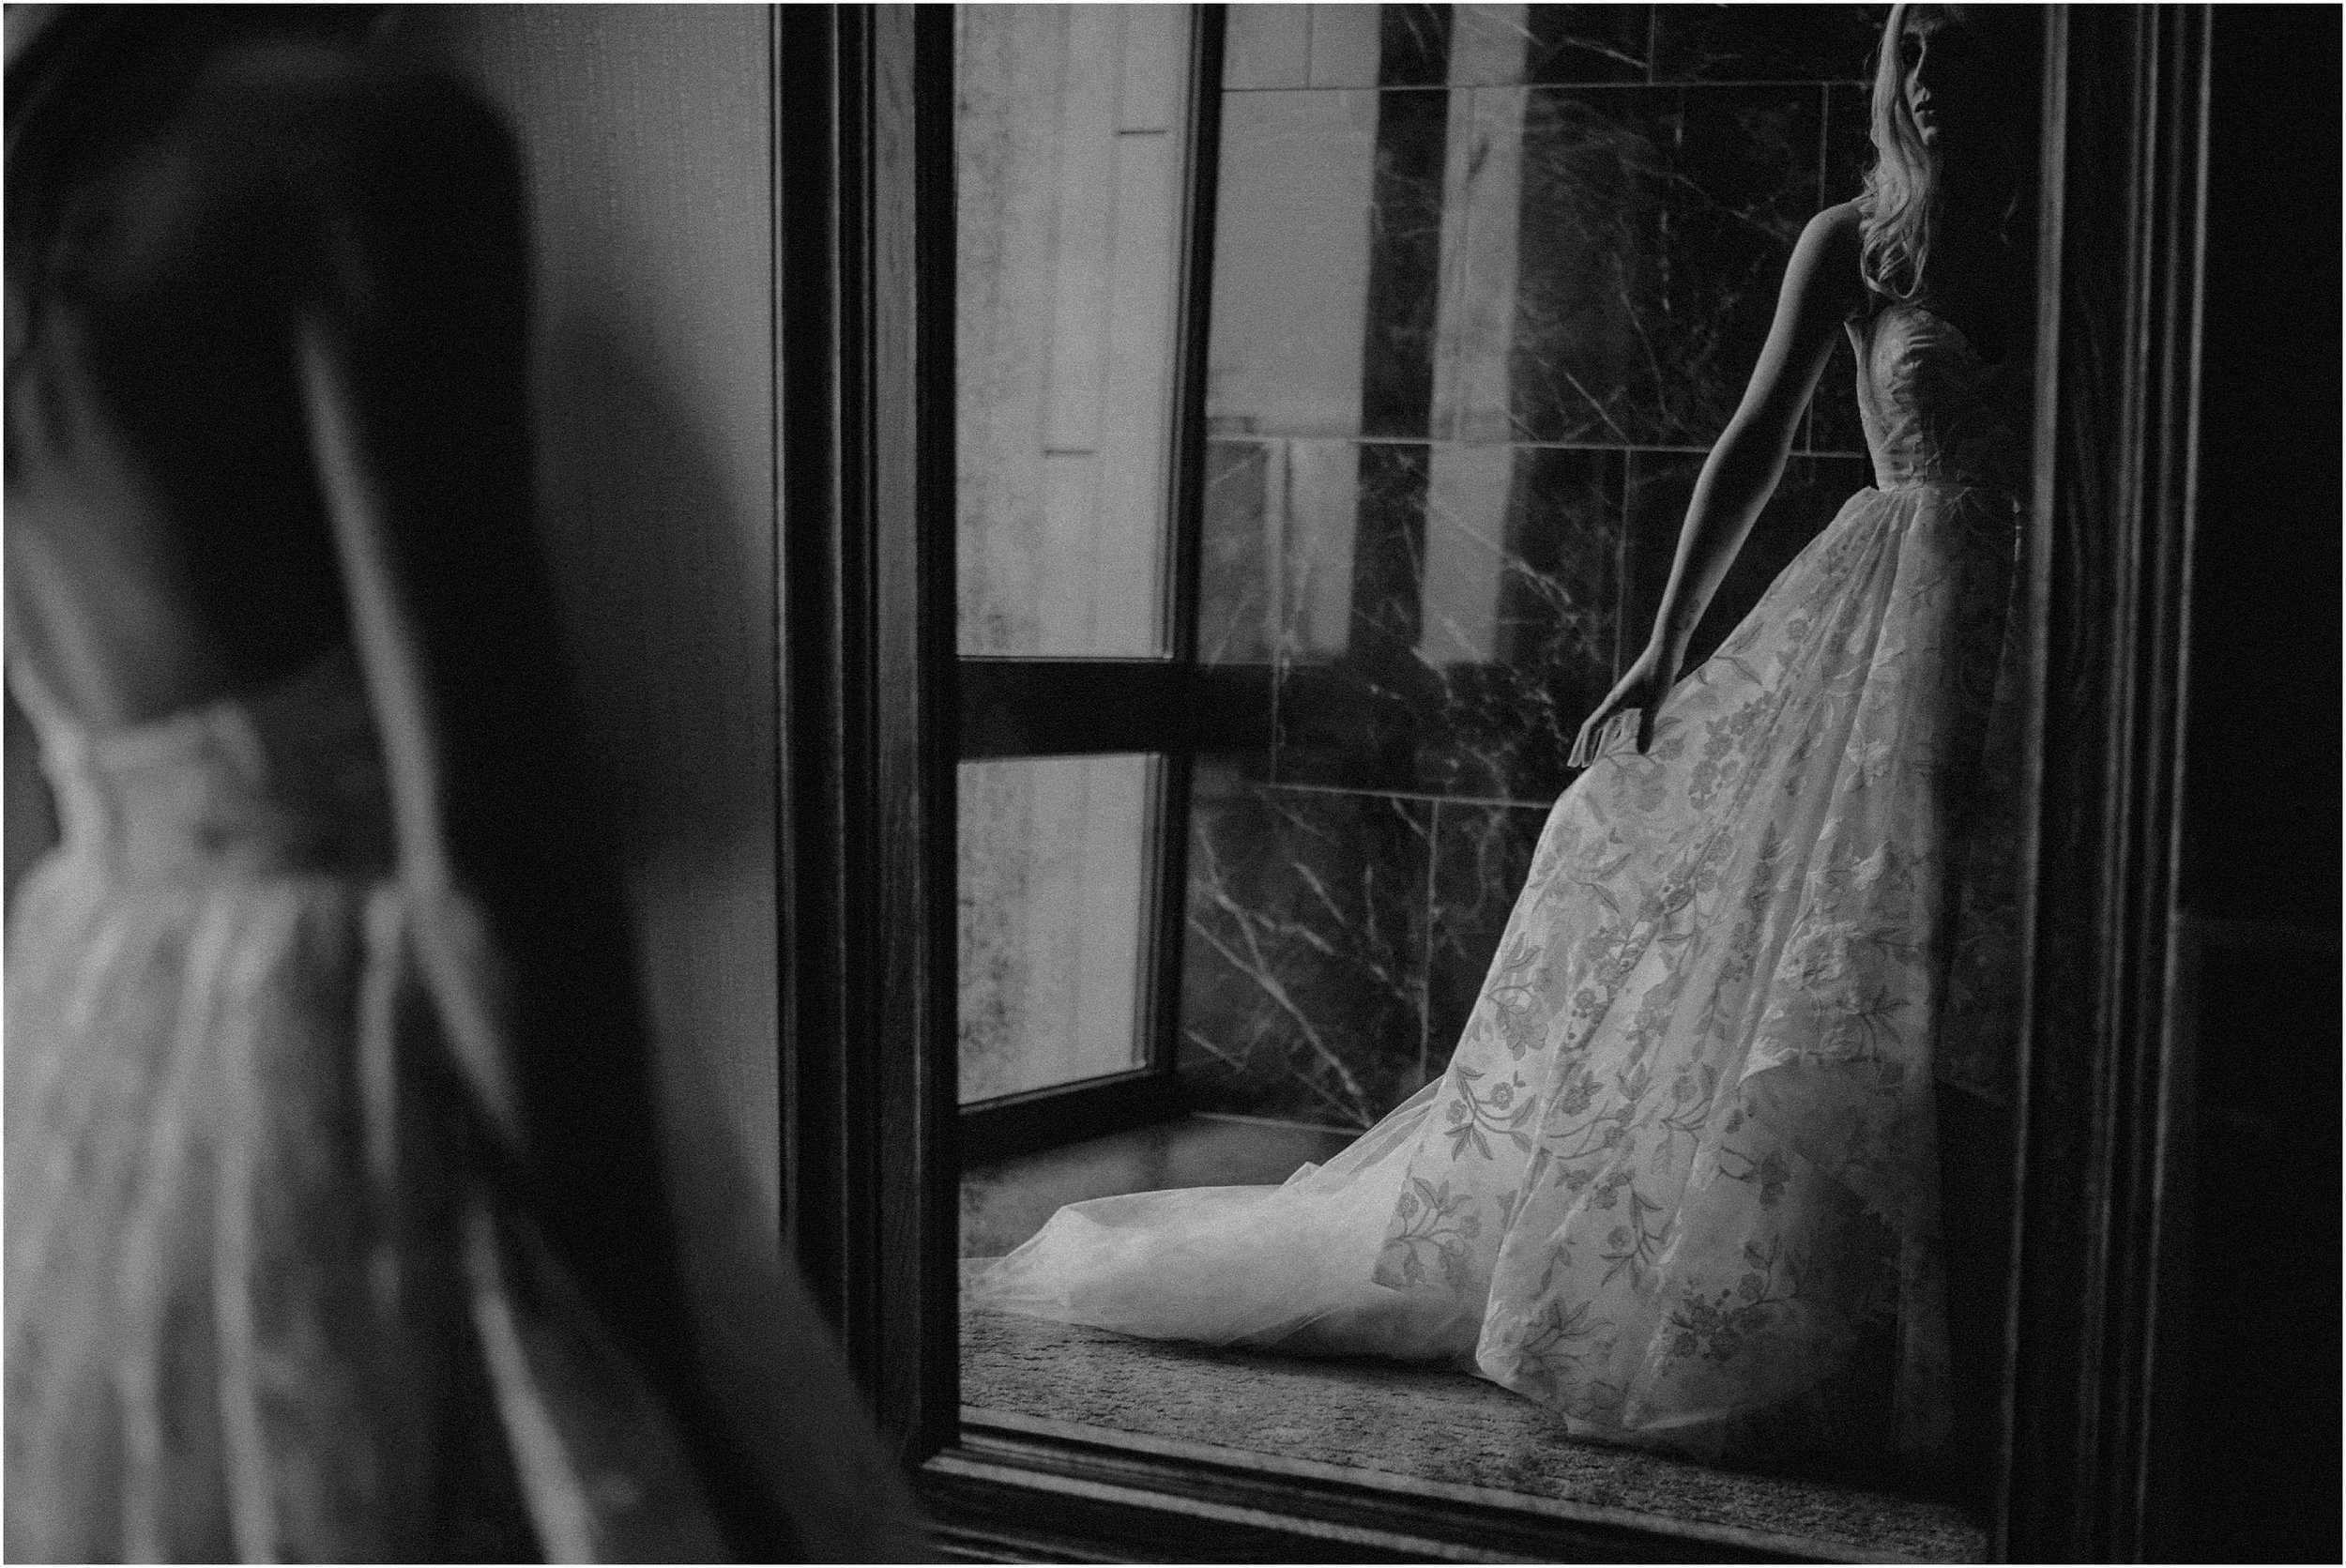 The bride watches her own reflection